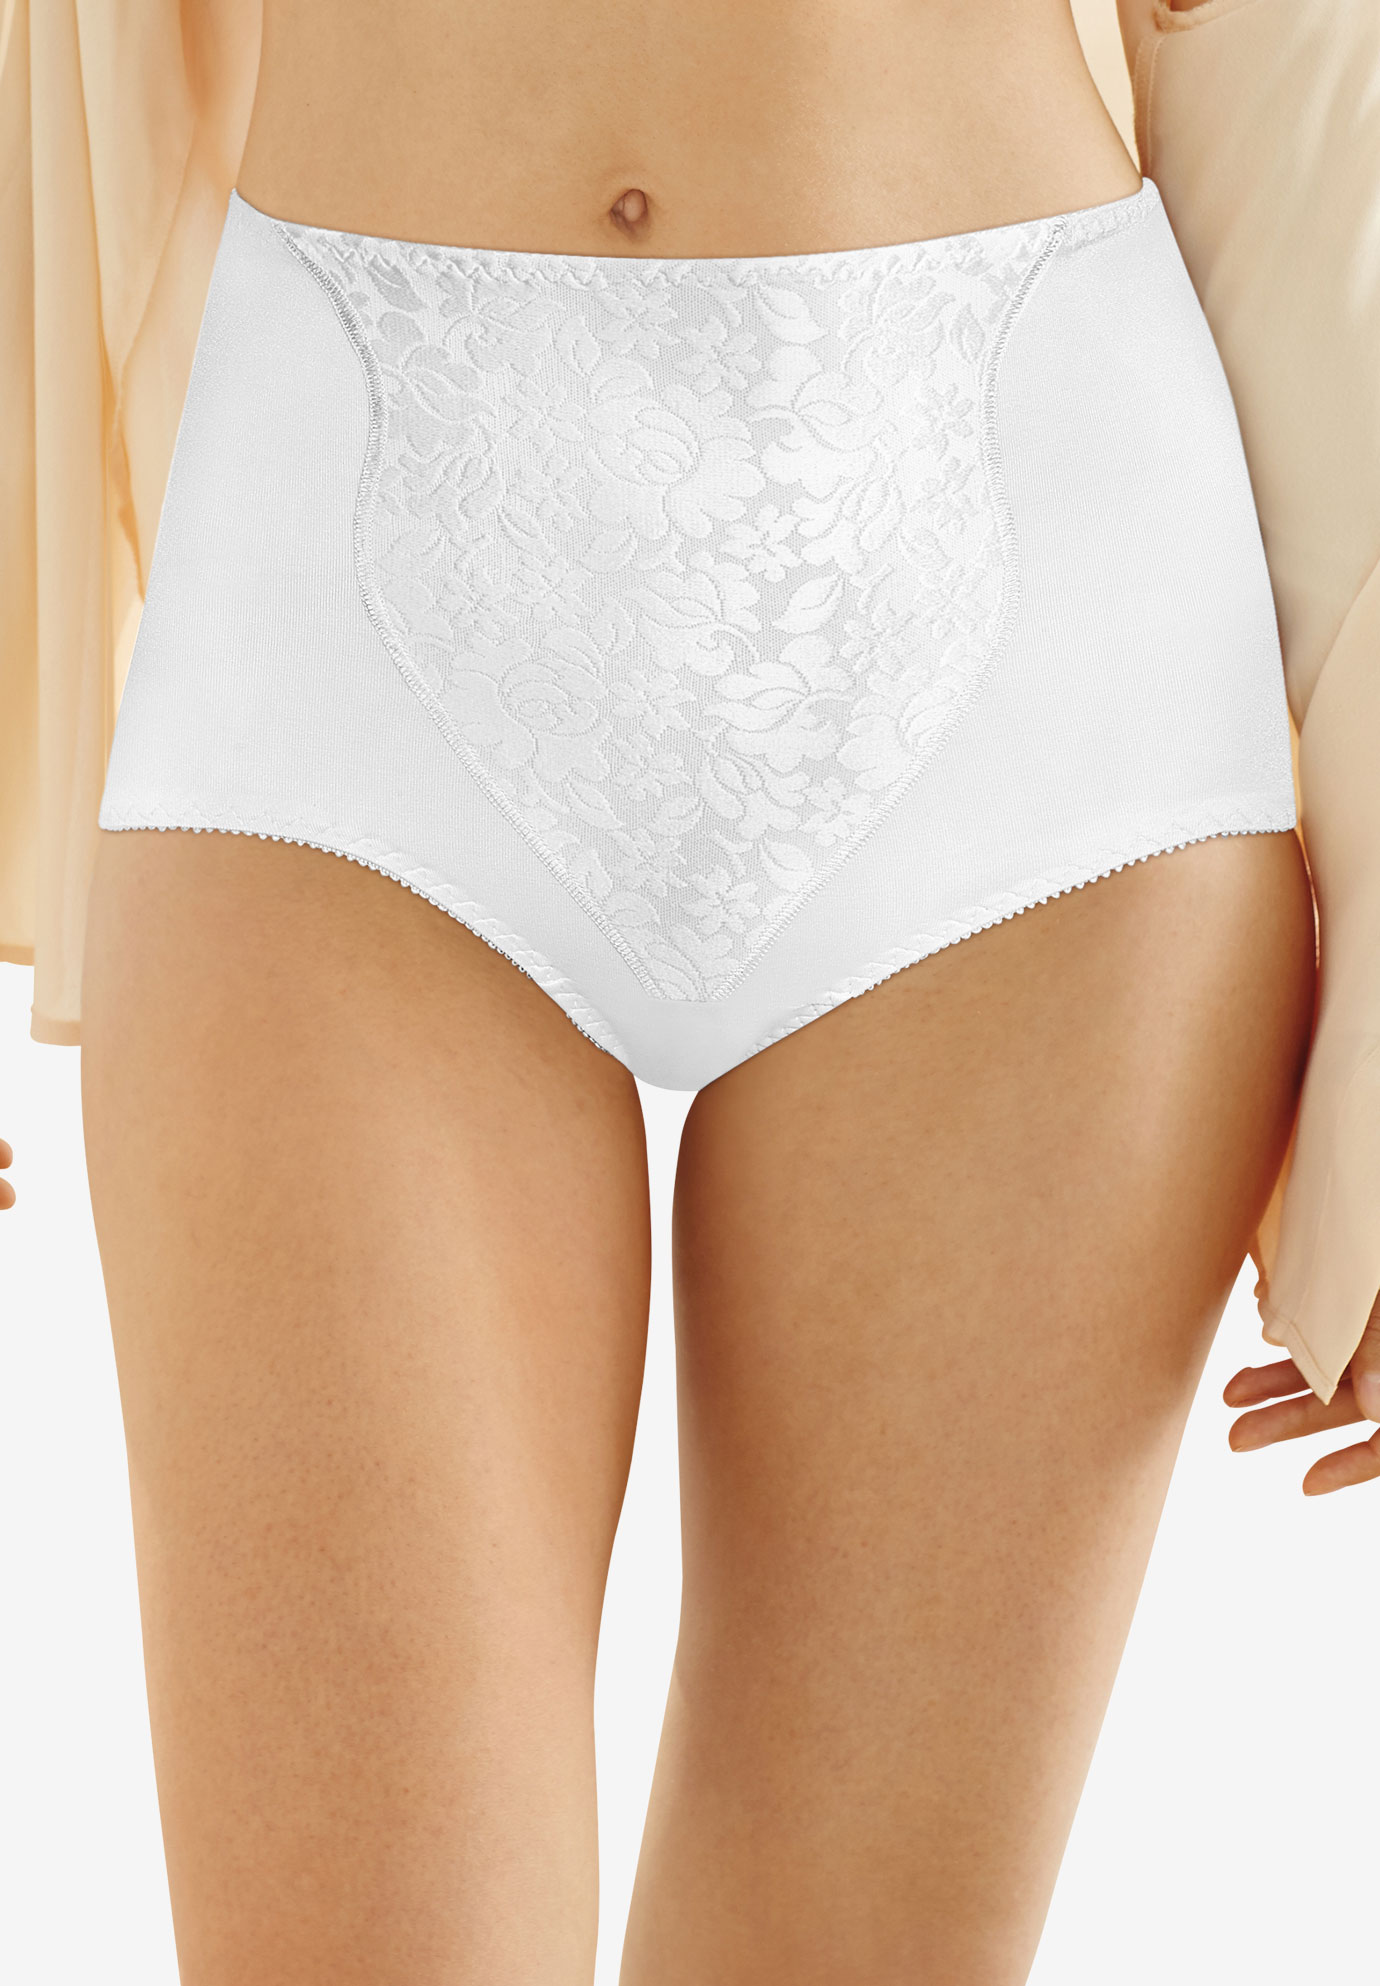 Bali® Light Control Lace Panel Brief 2-Pack #X372,